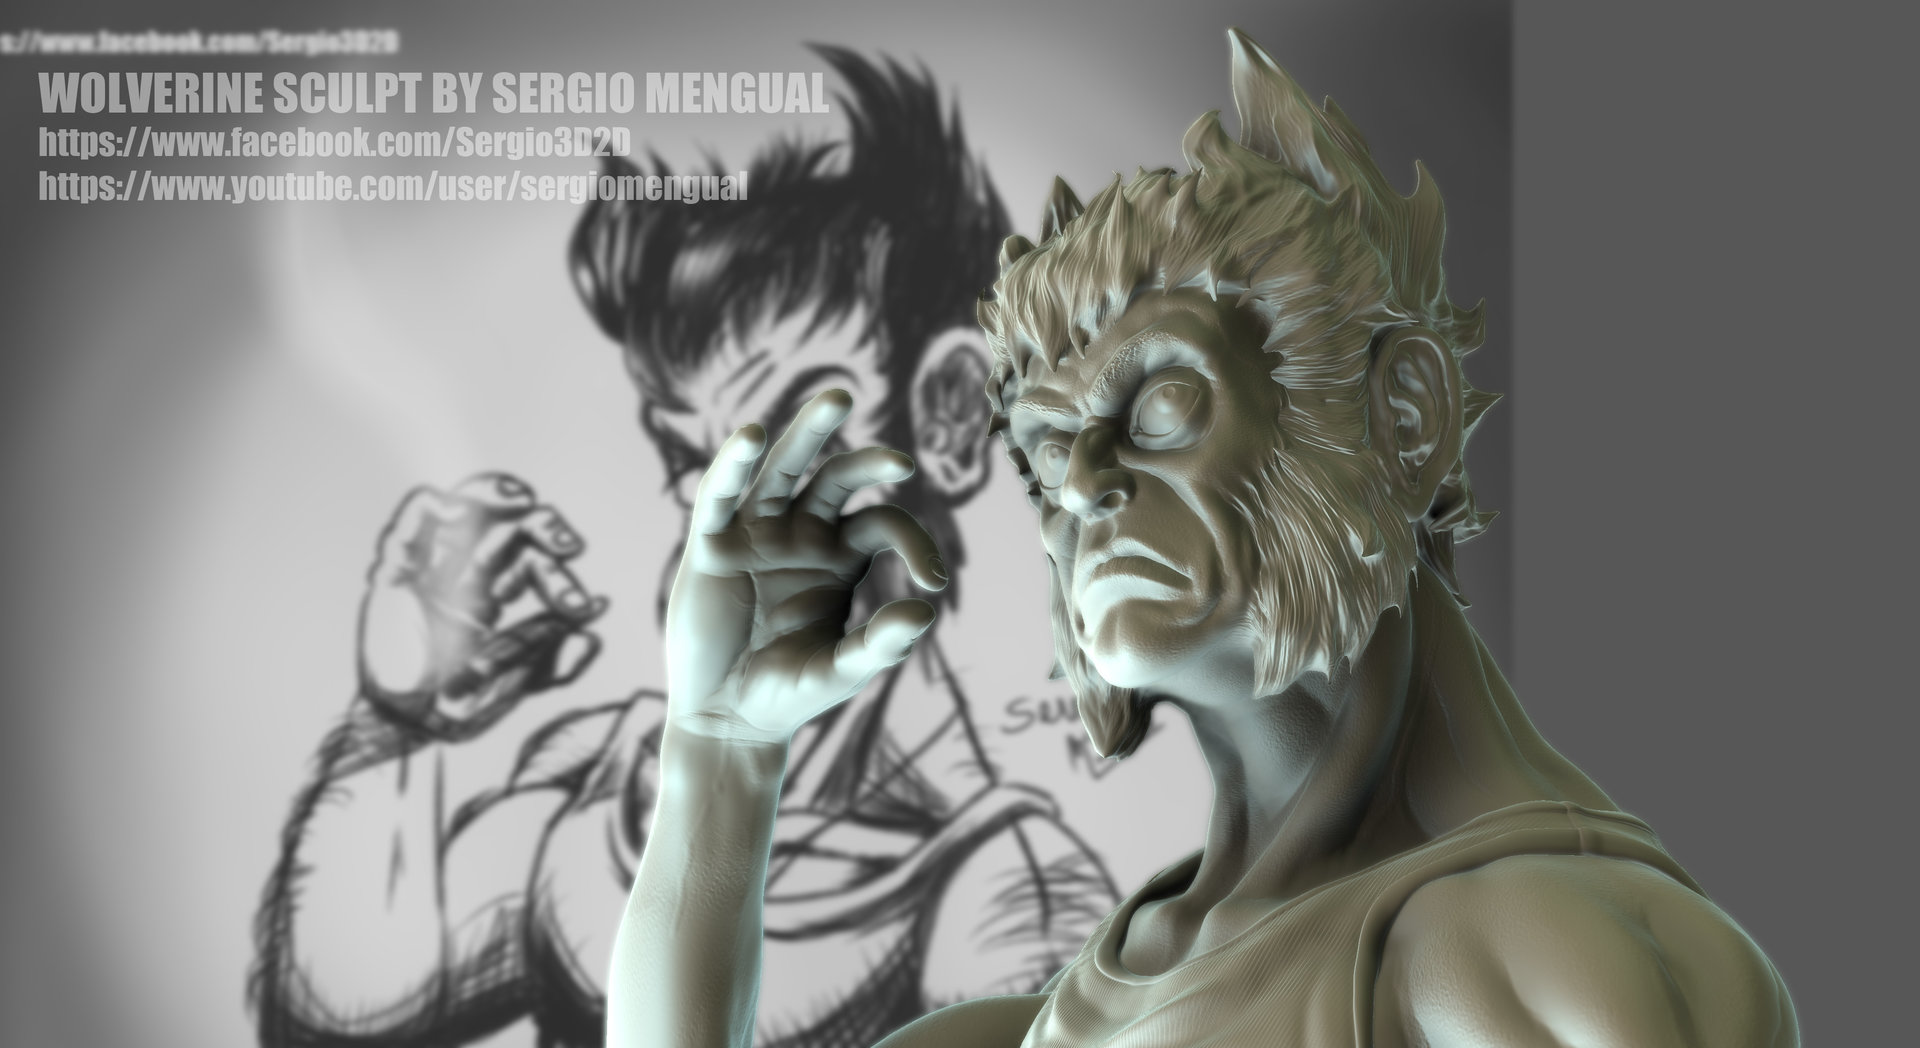 Sergio gabriel mengual wolverine pose test2 publish